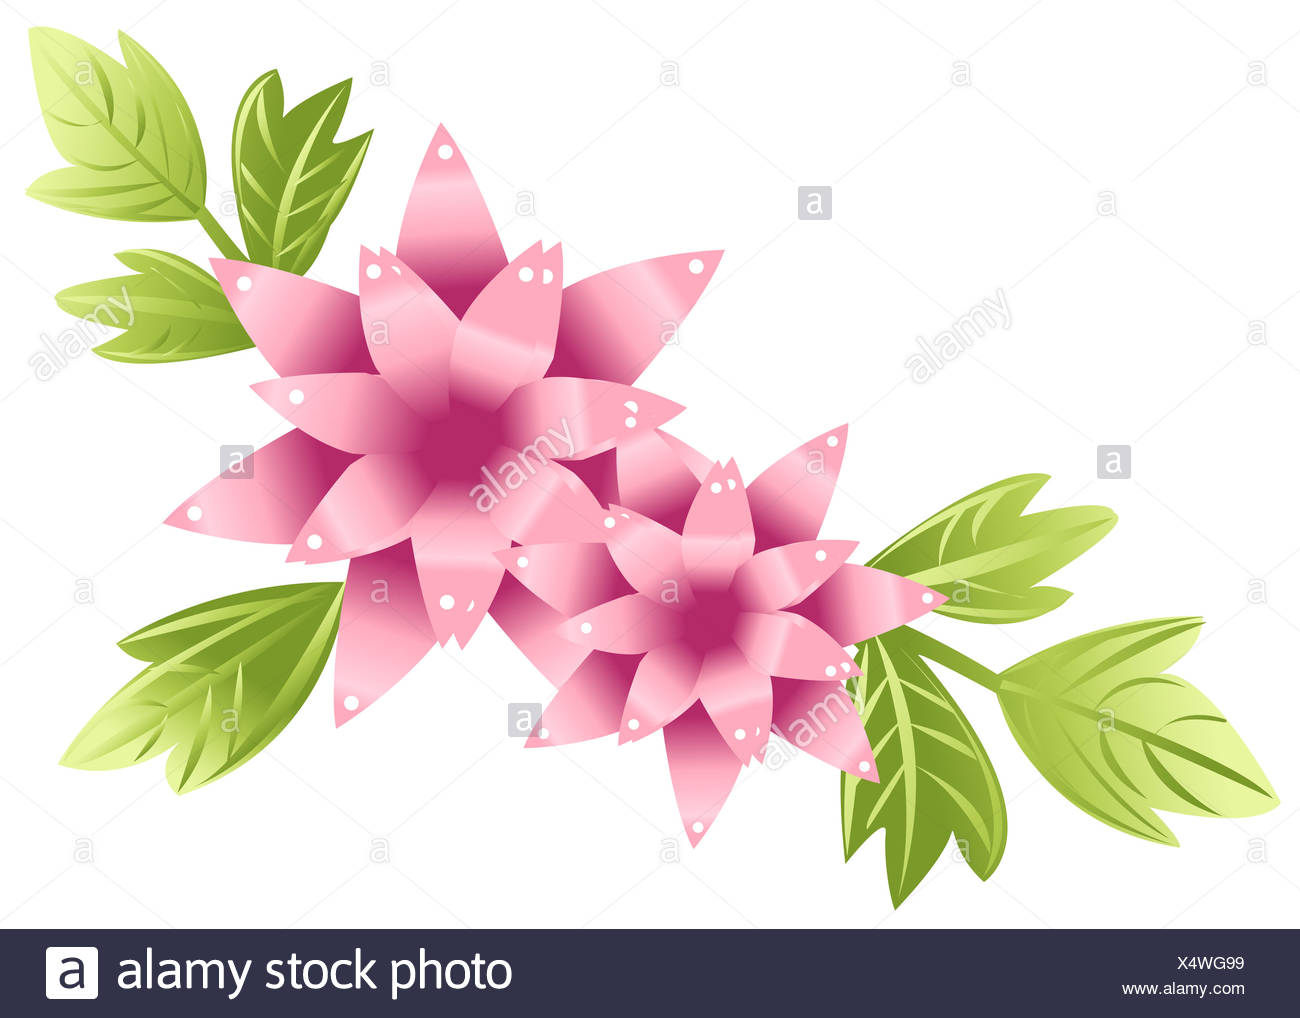 Lotus Flower Wallpaper Cut Out Stock Images Pictures